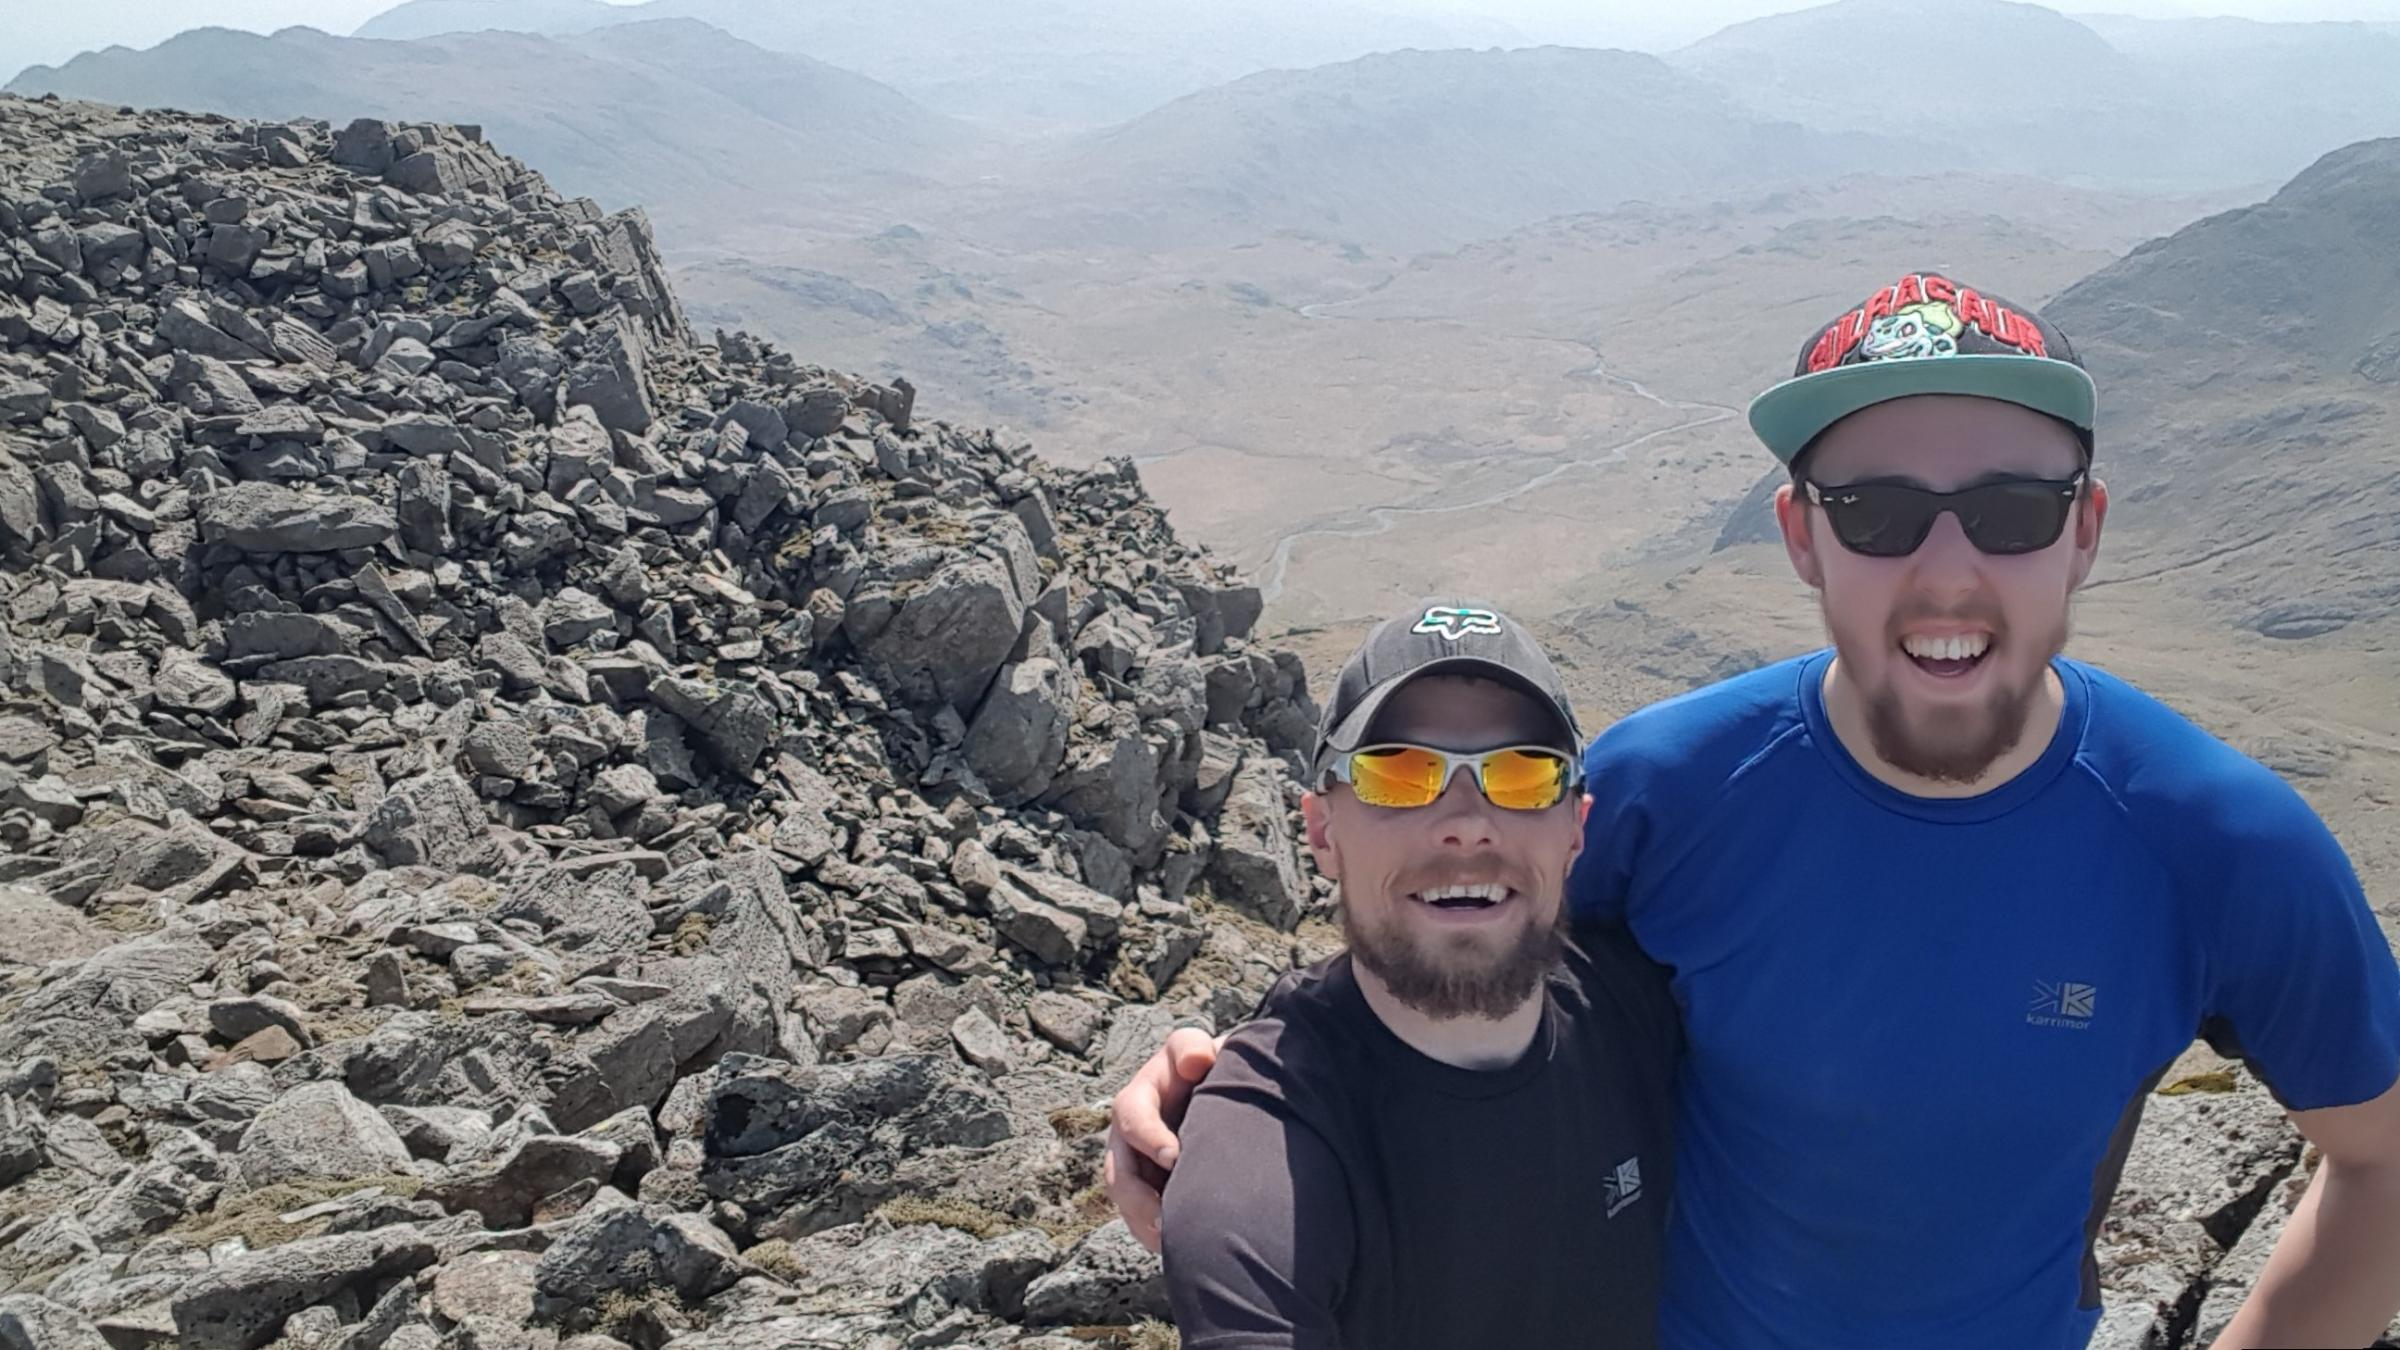 Dave Herron and Jason Oglesby are gearing up to scale the National Three Peaks